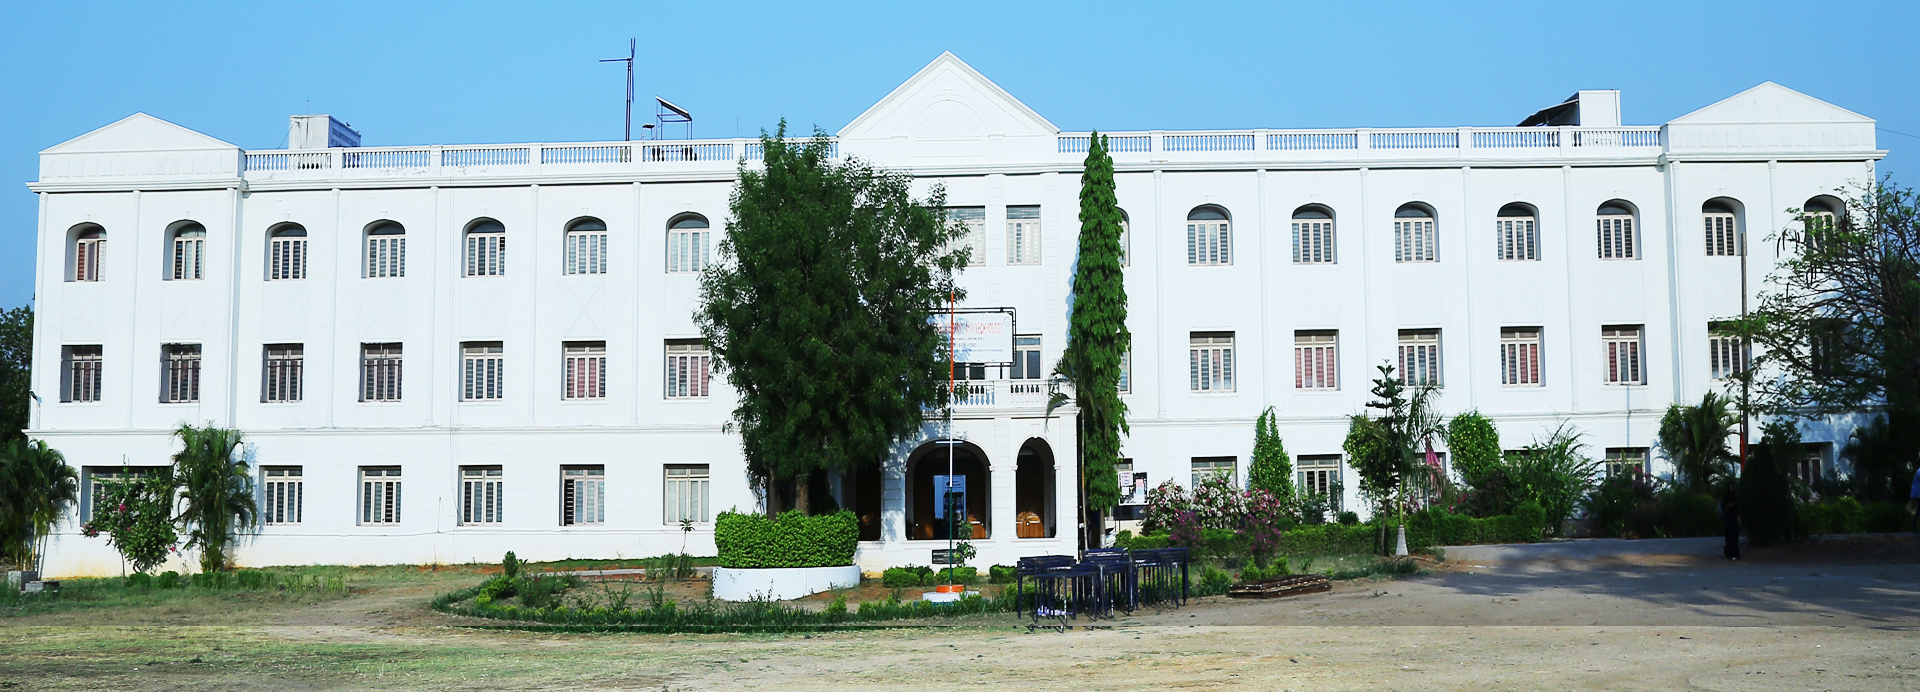 Global Institute of Engineering and Technology, Vellore Image